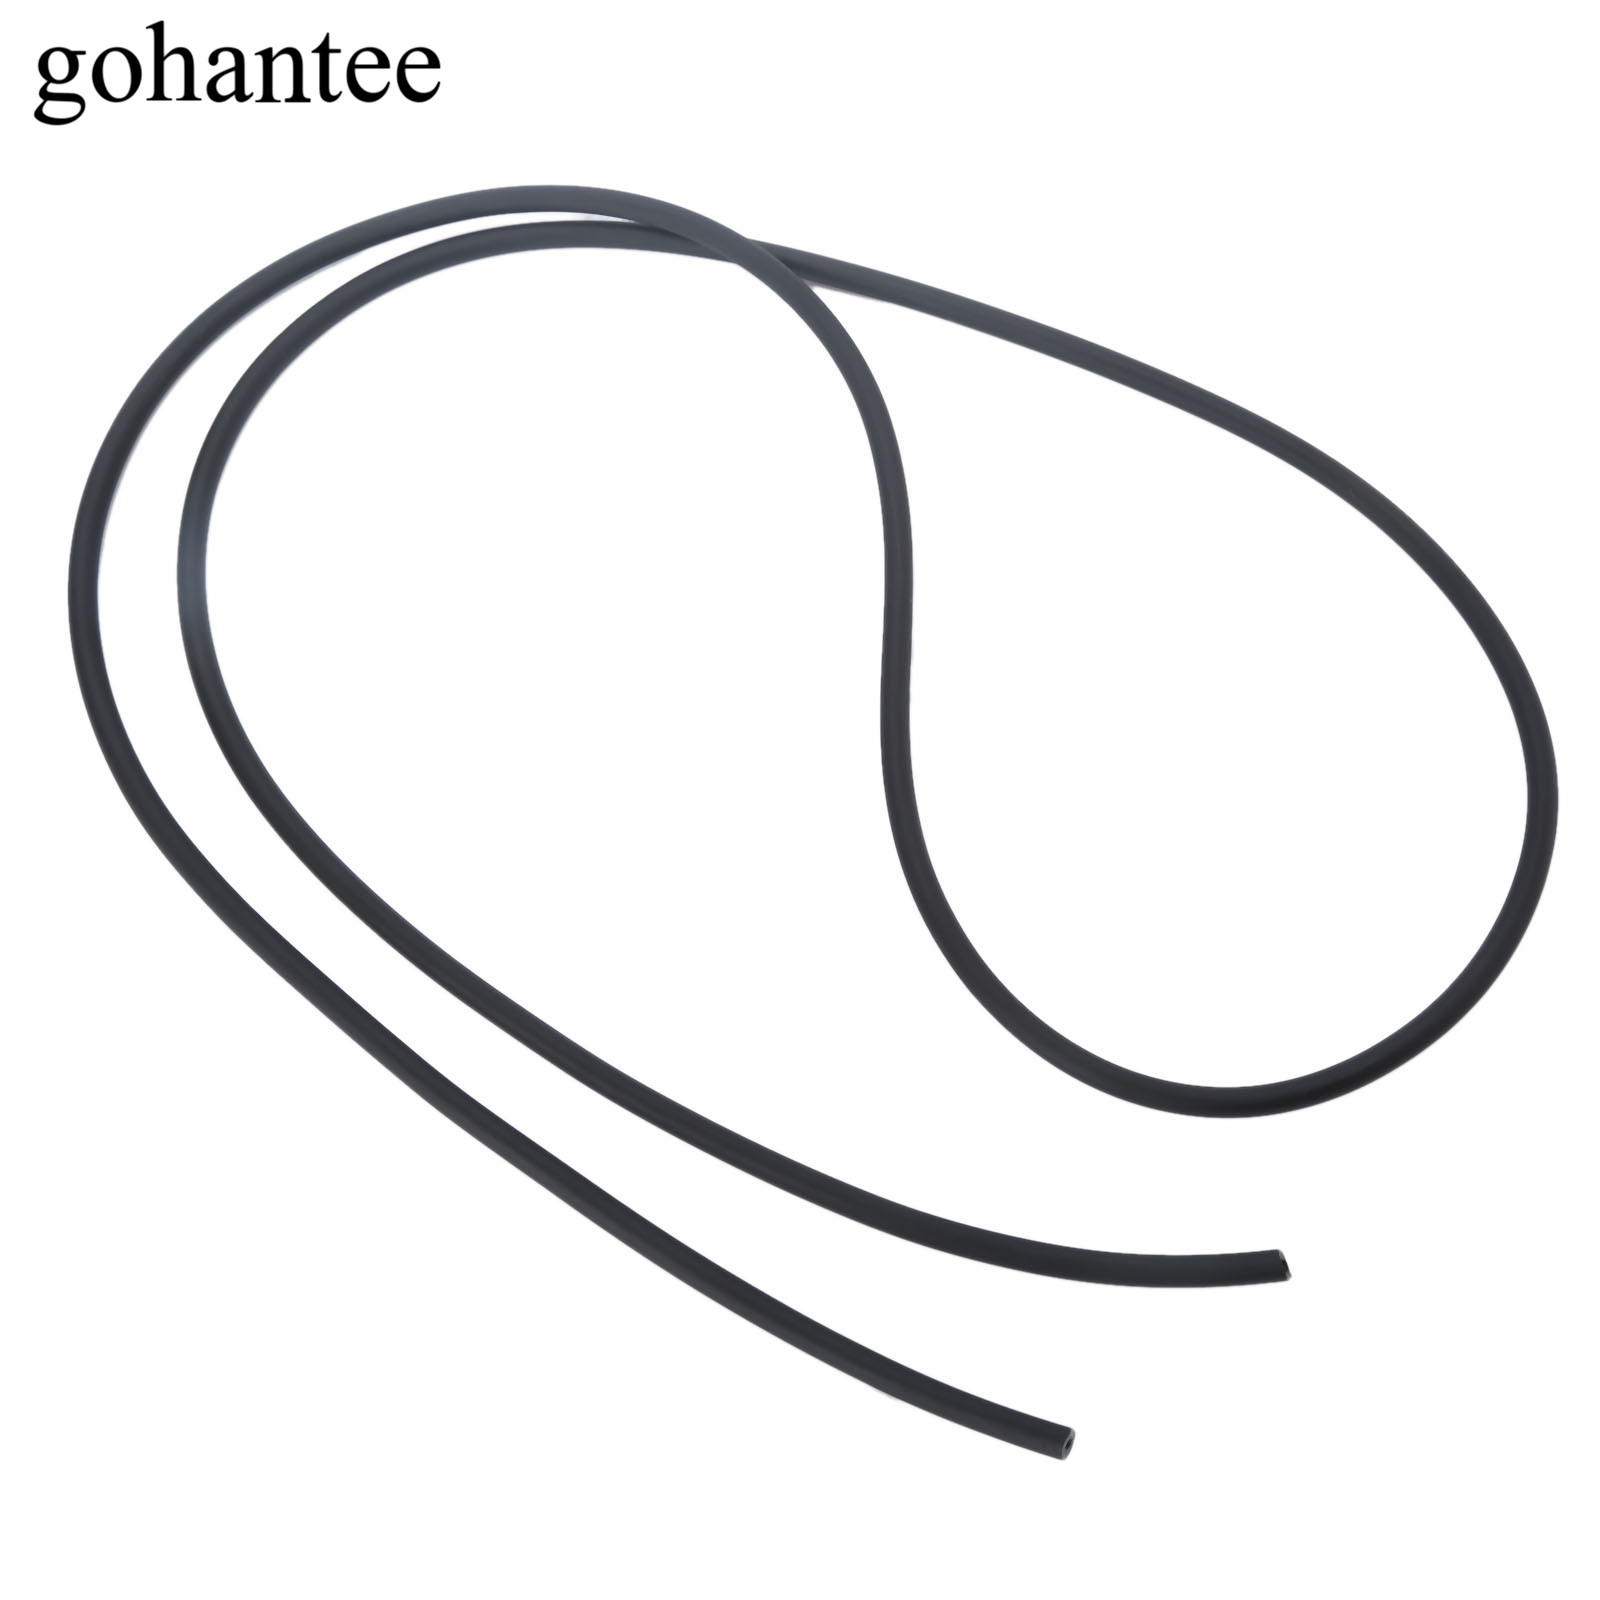 Gohantee Black 1m Natural Latex Rubber Tube Elastica